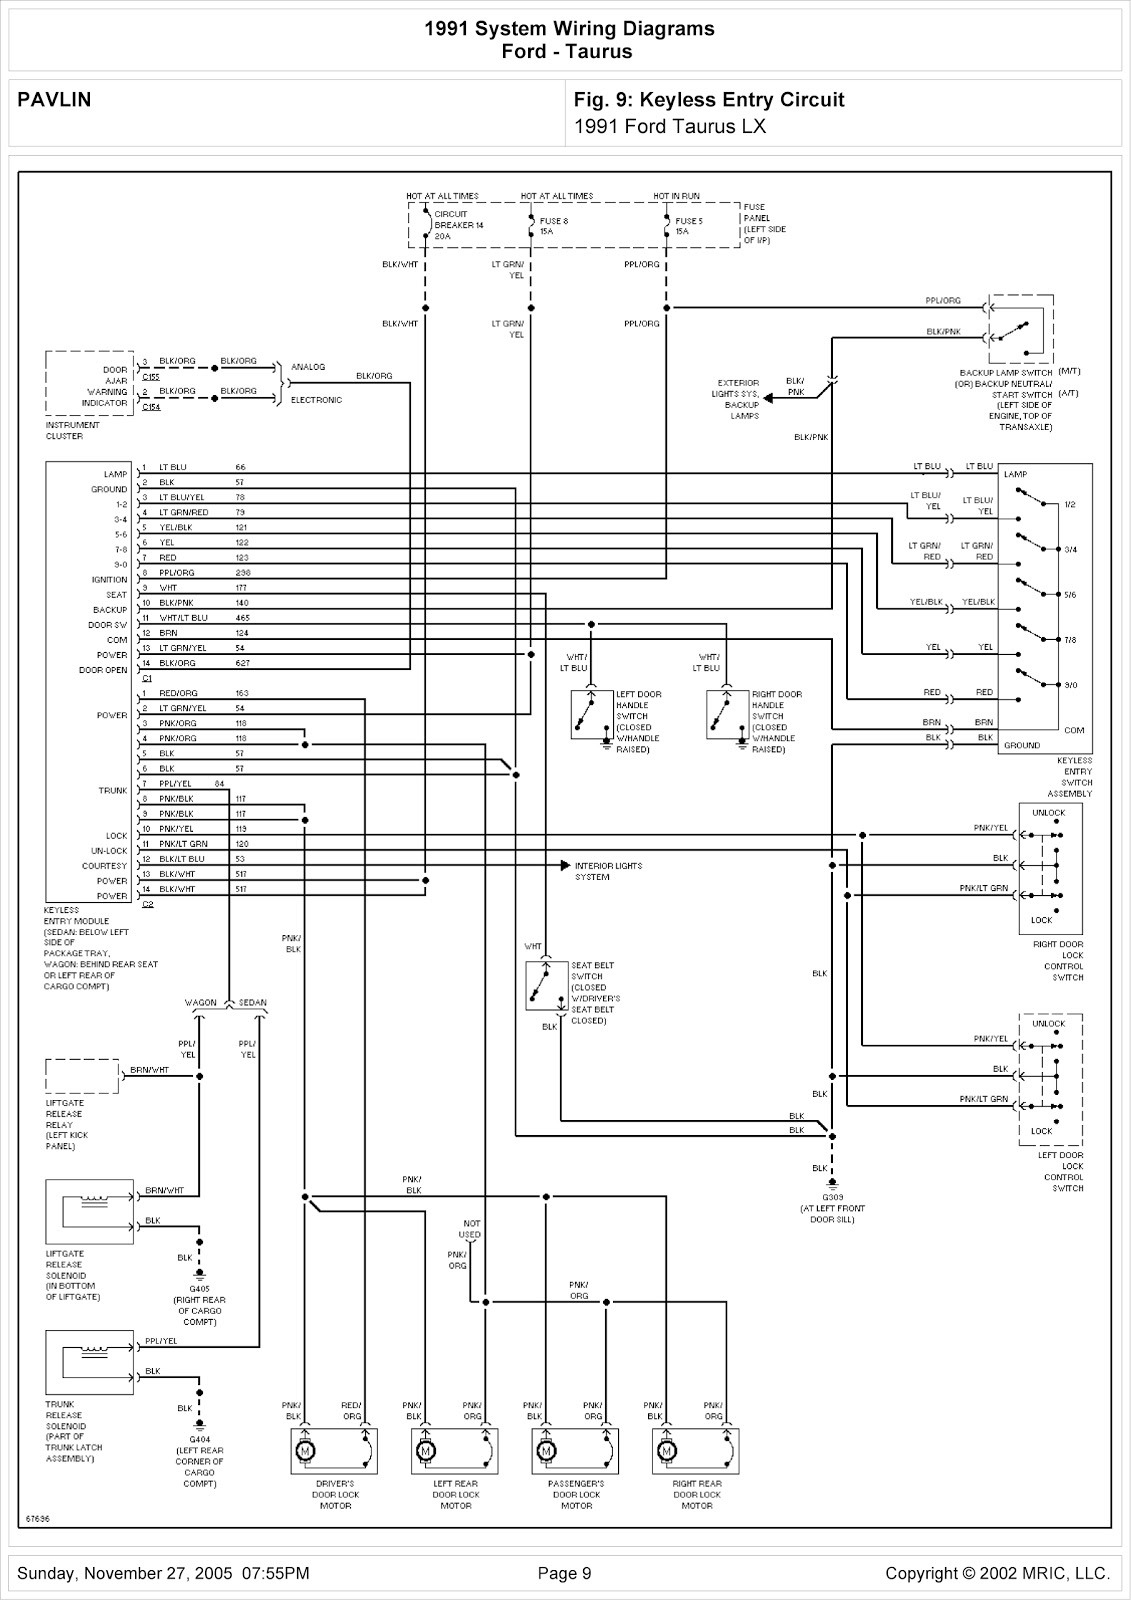 2012 ford taurus wiring diagram - wiring diagram book craft-will-a -  craft-will-a.prolocoisoletremiti.it  prolocoisoletremiti.it